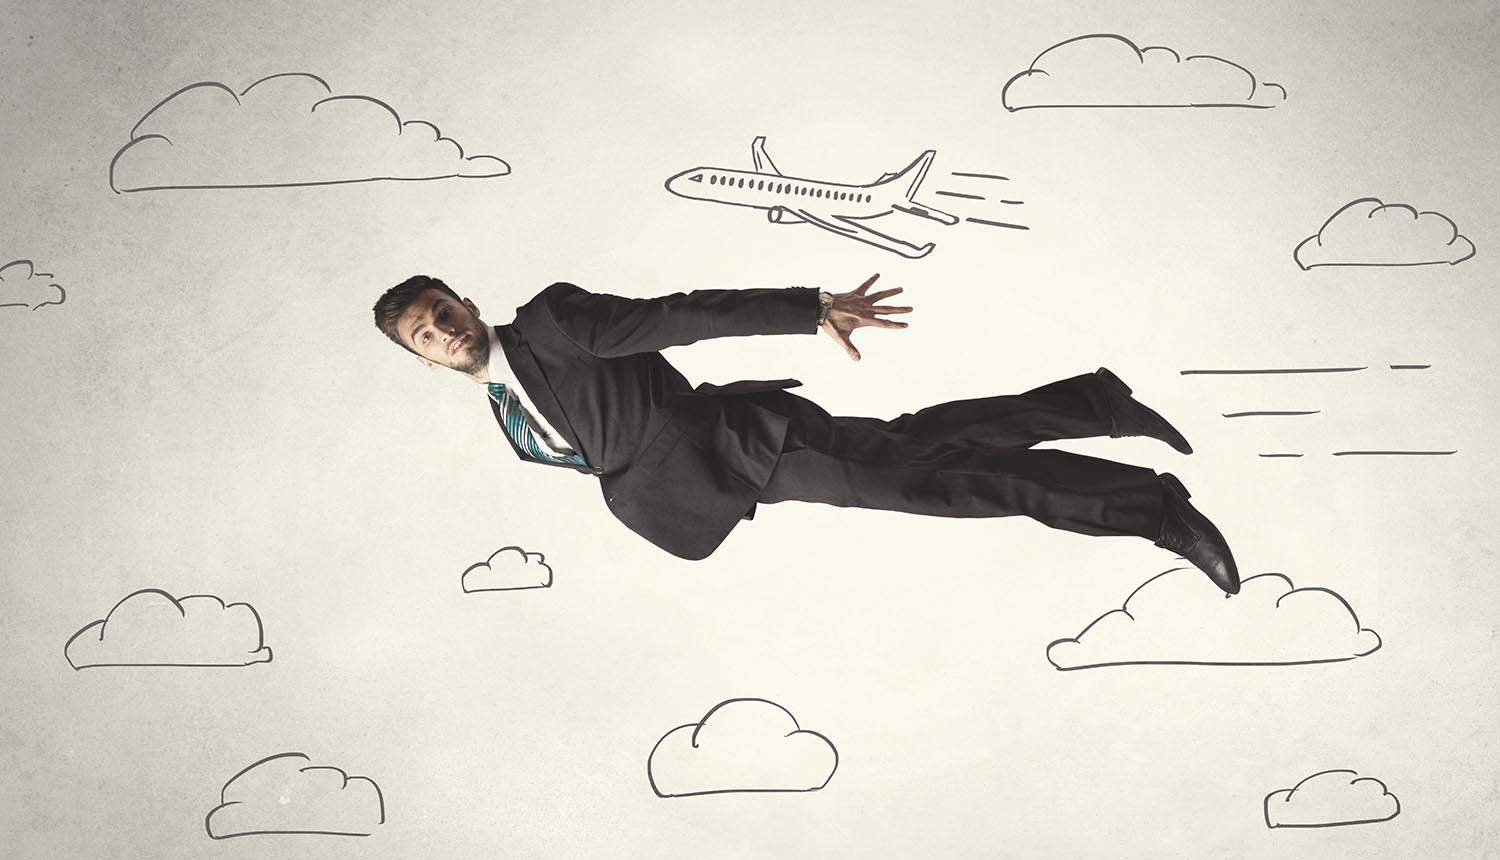 Image of man flying among clouds representing data protection regulations from cloud technology perspective